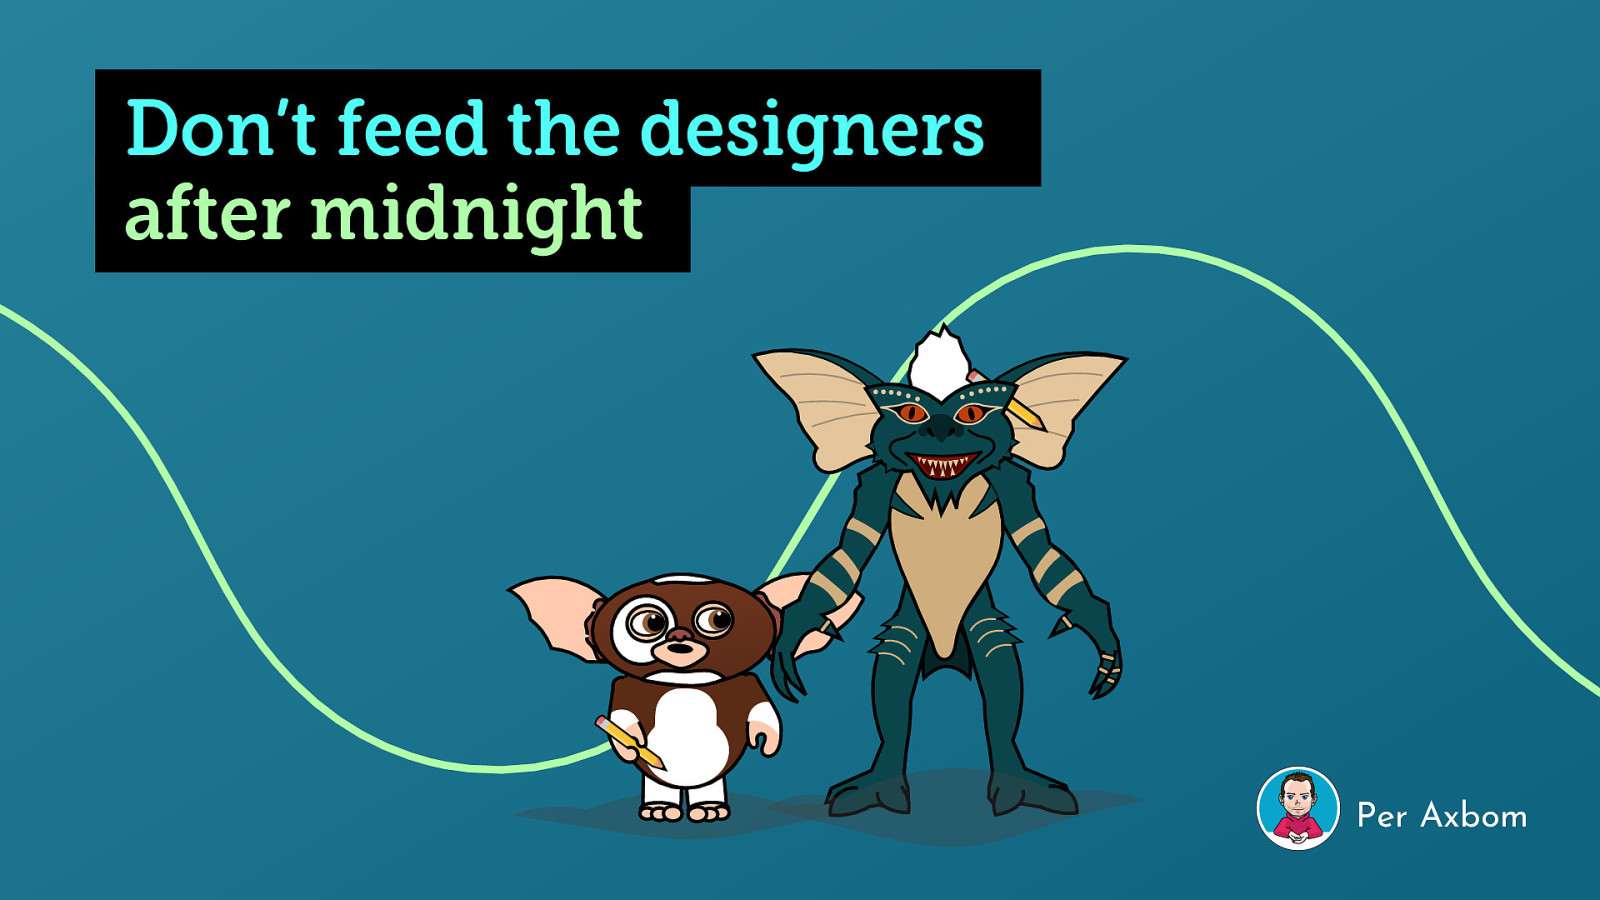 Don't feed the designers after midnight